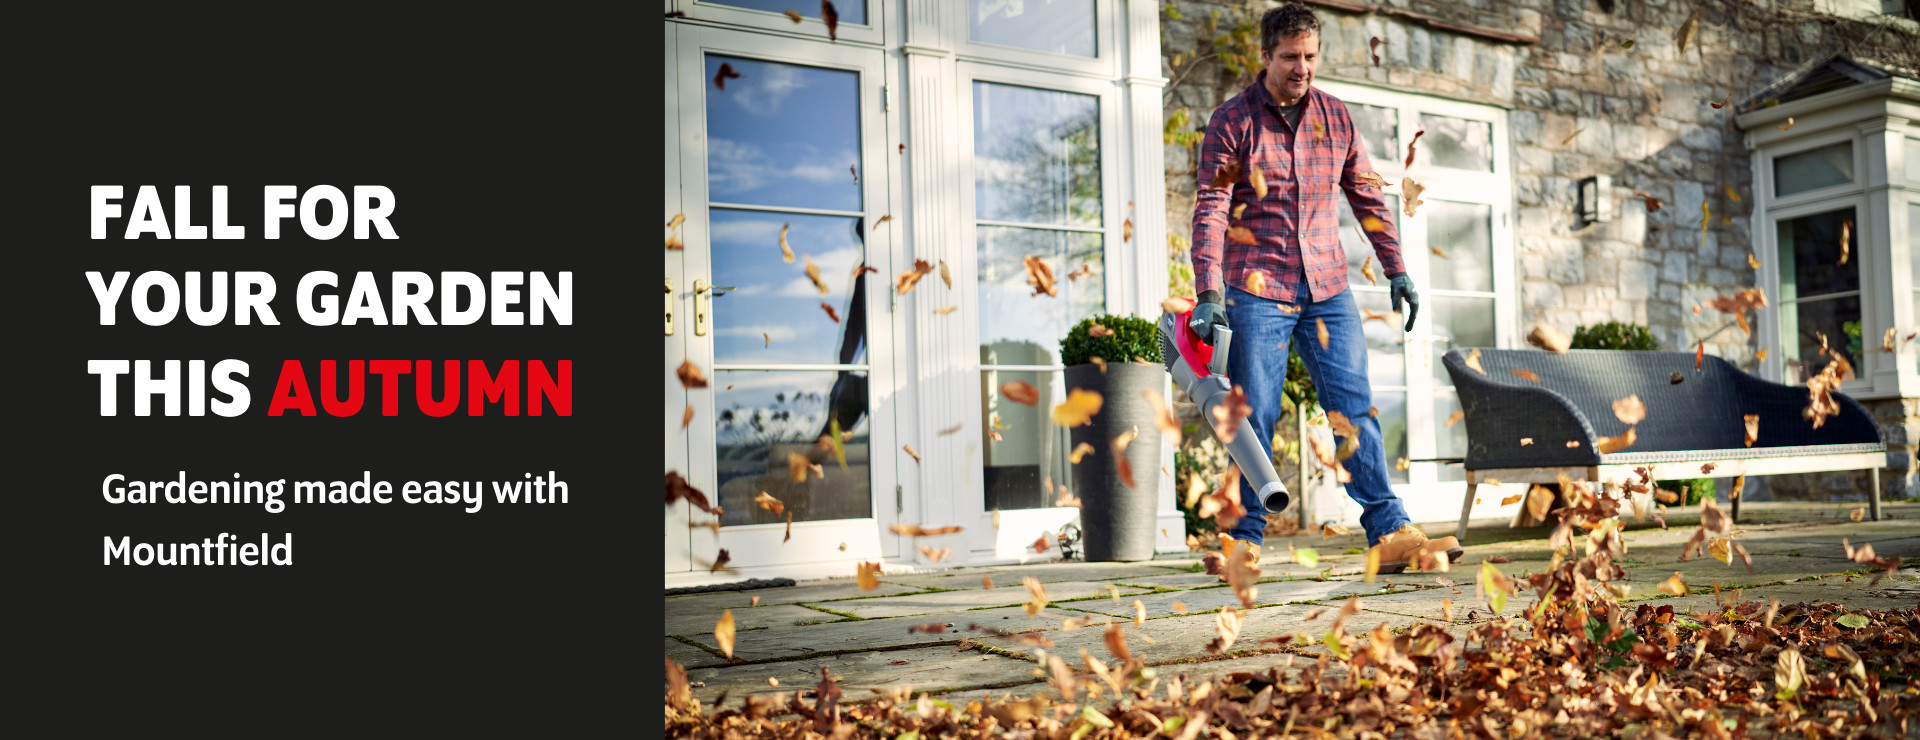 Fall for your Garden this Autumn